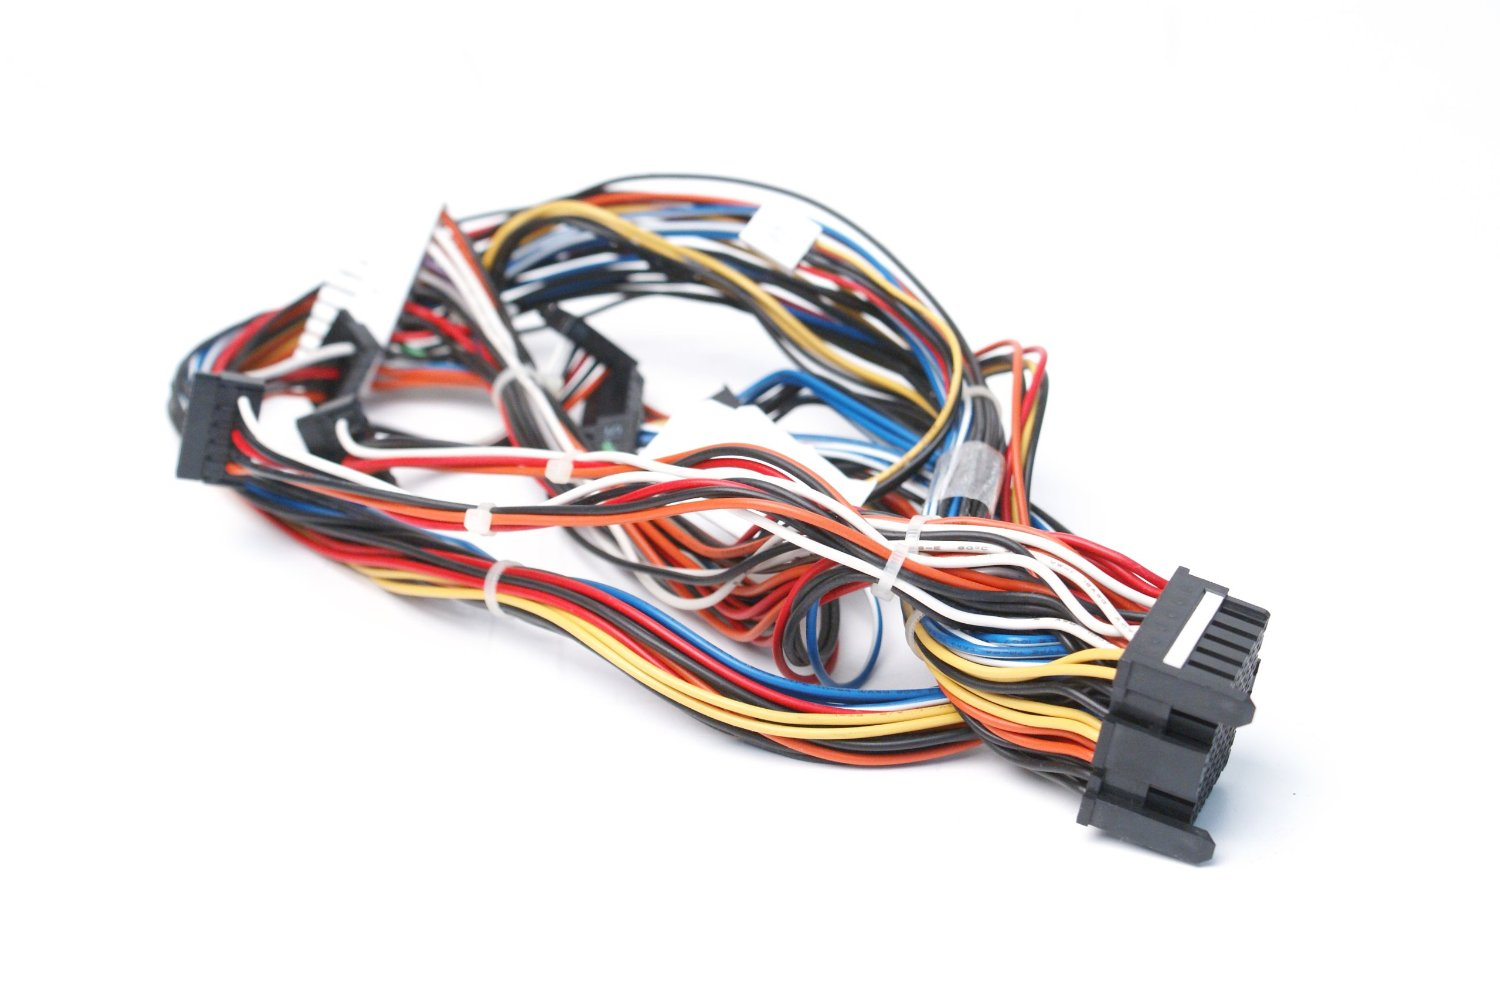 Cheap Power Supply Wiring Diagram Find Charging Circuit For The 1949 Cadillac All Models Get Quotations Dell Precision T3400 525w Psu Cable Harness Kp500